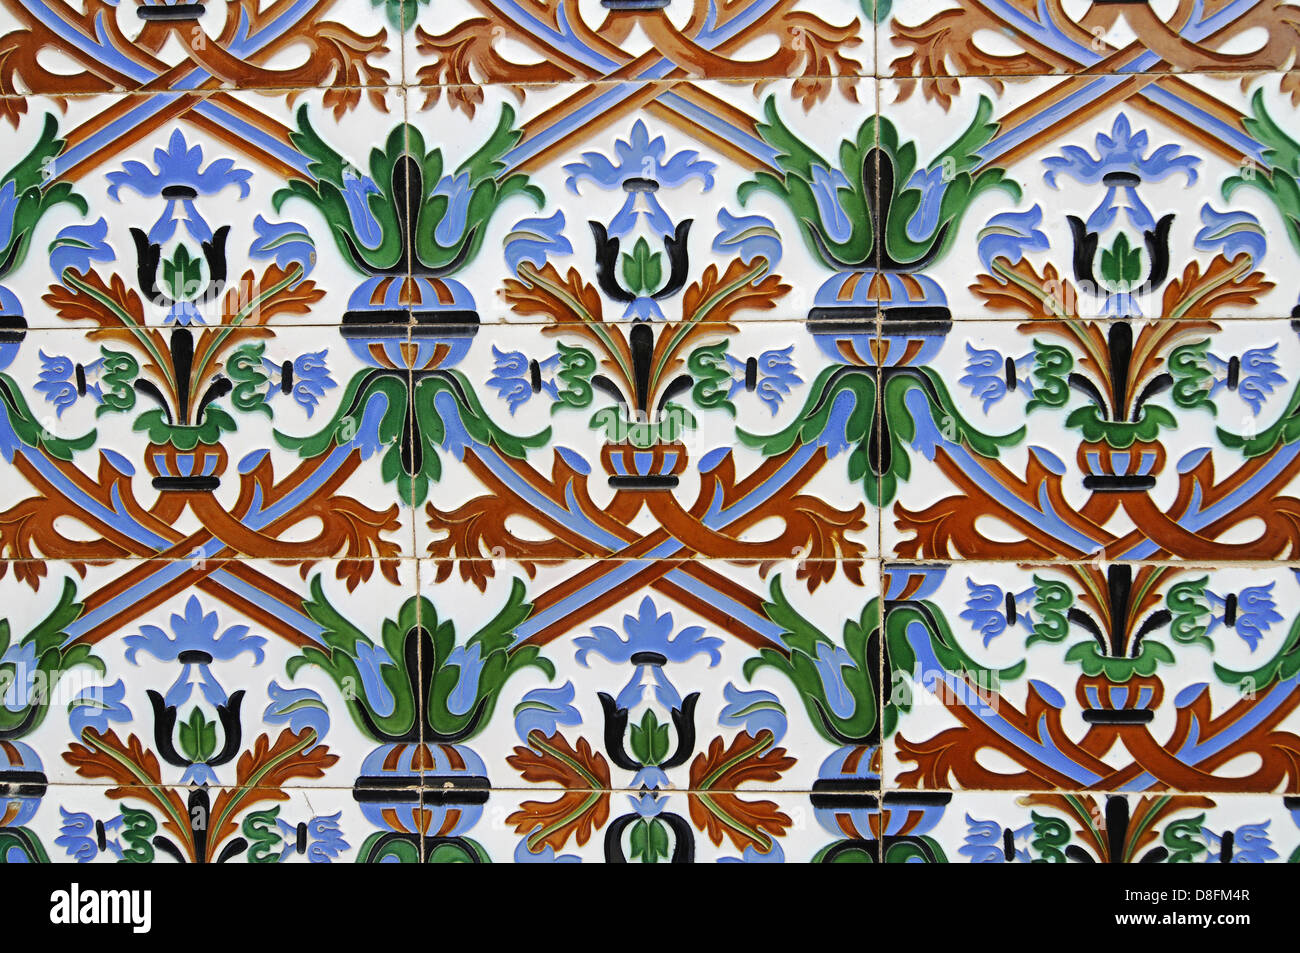 Spanish tiles - Stock Image